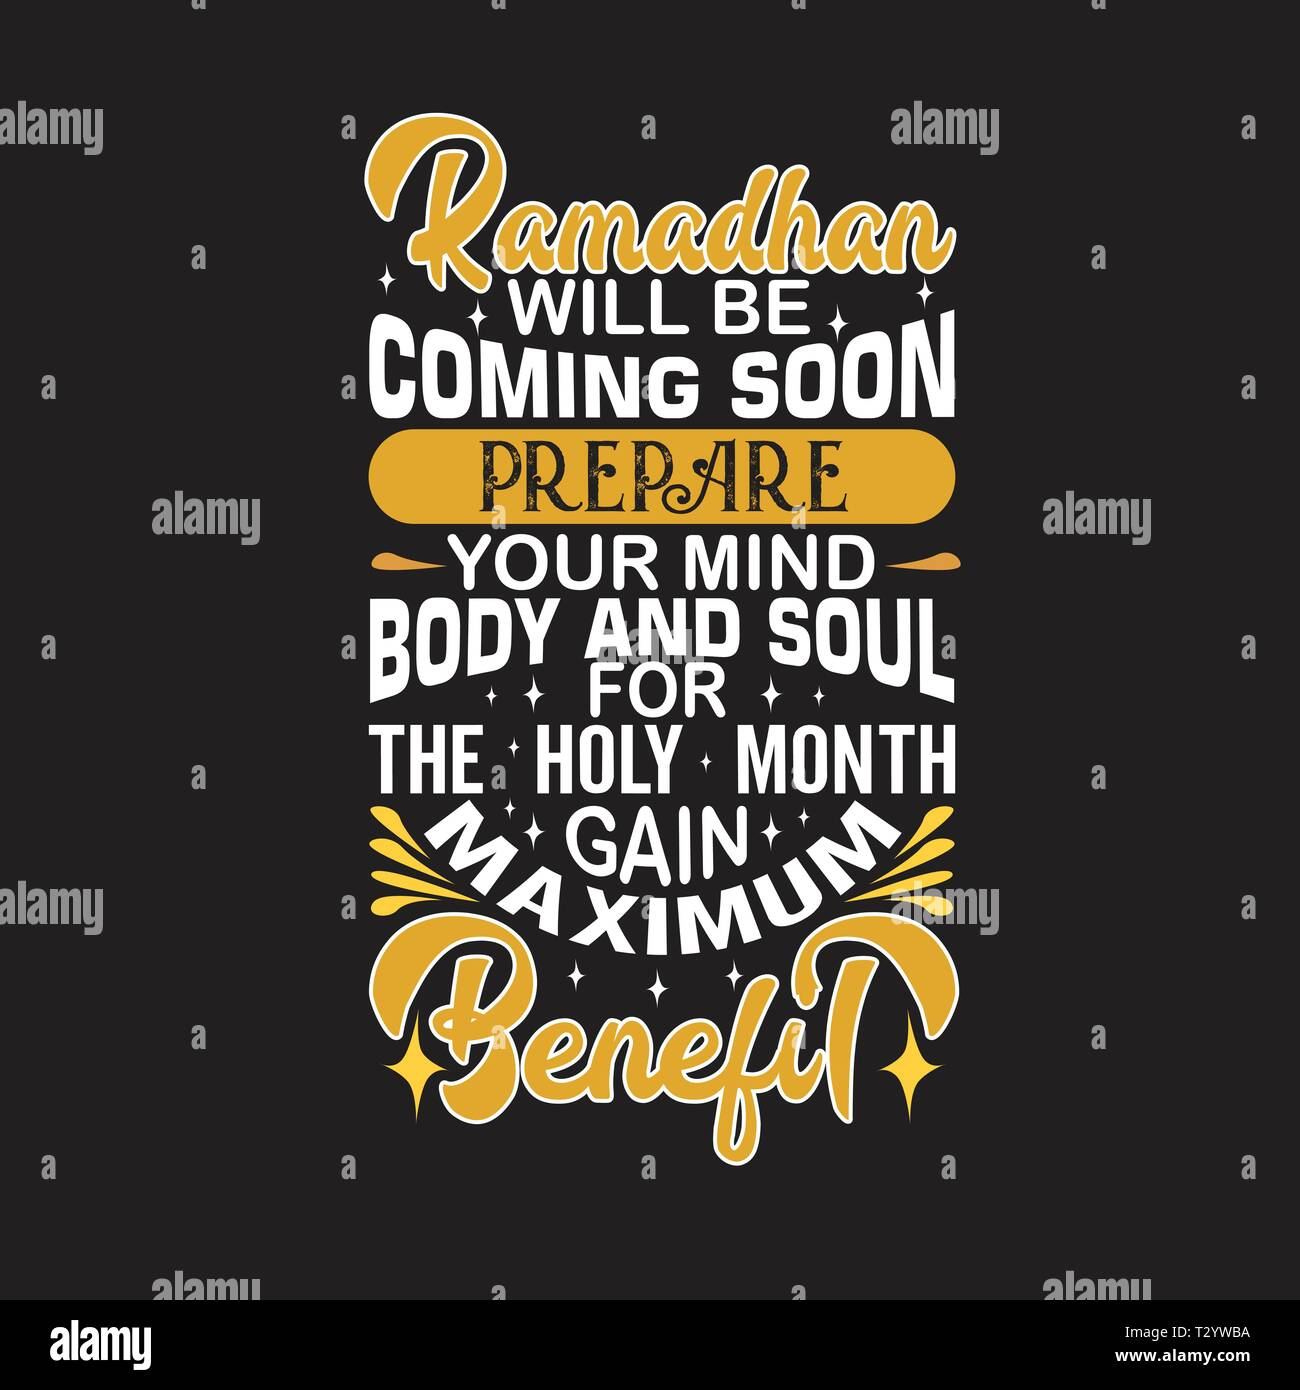 Ramadan Quote Ramadan Will Coming Soon Prepare Your Mind Stock Vector Image Art Alamy